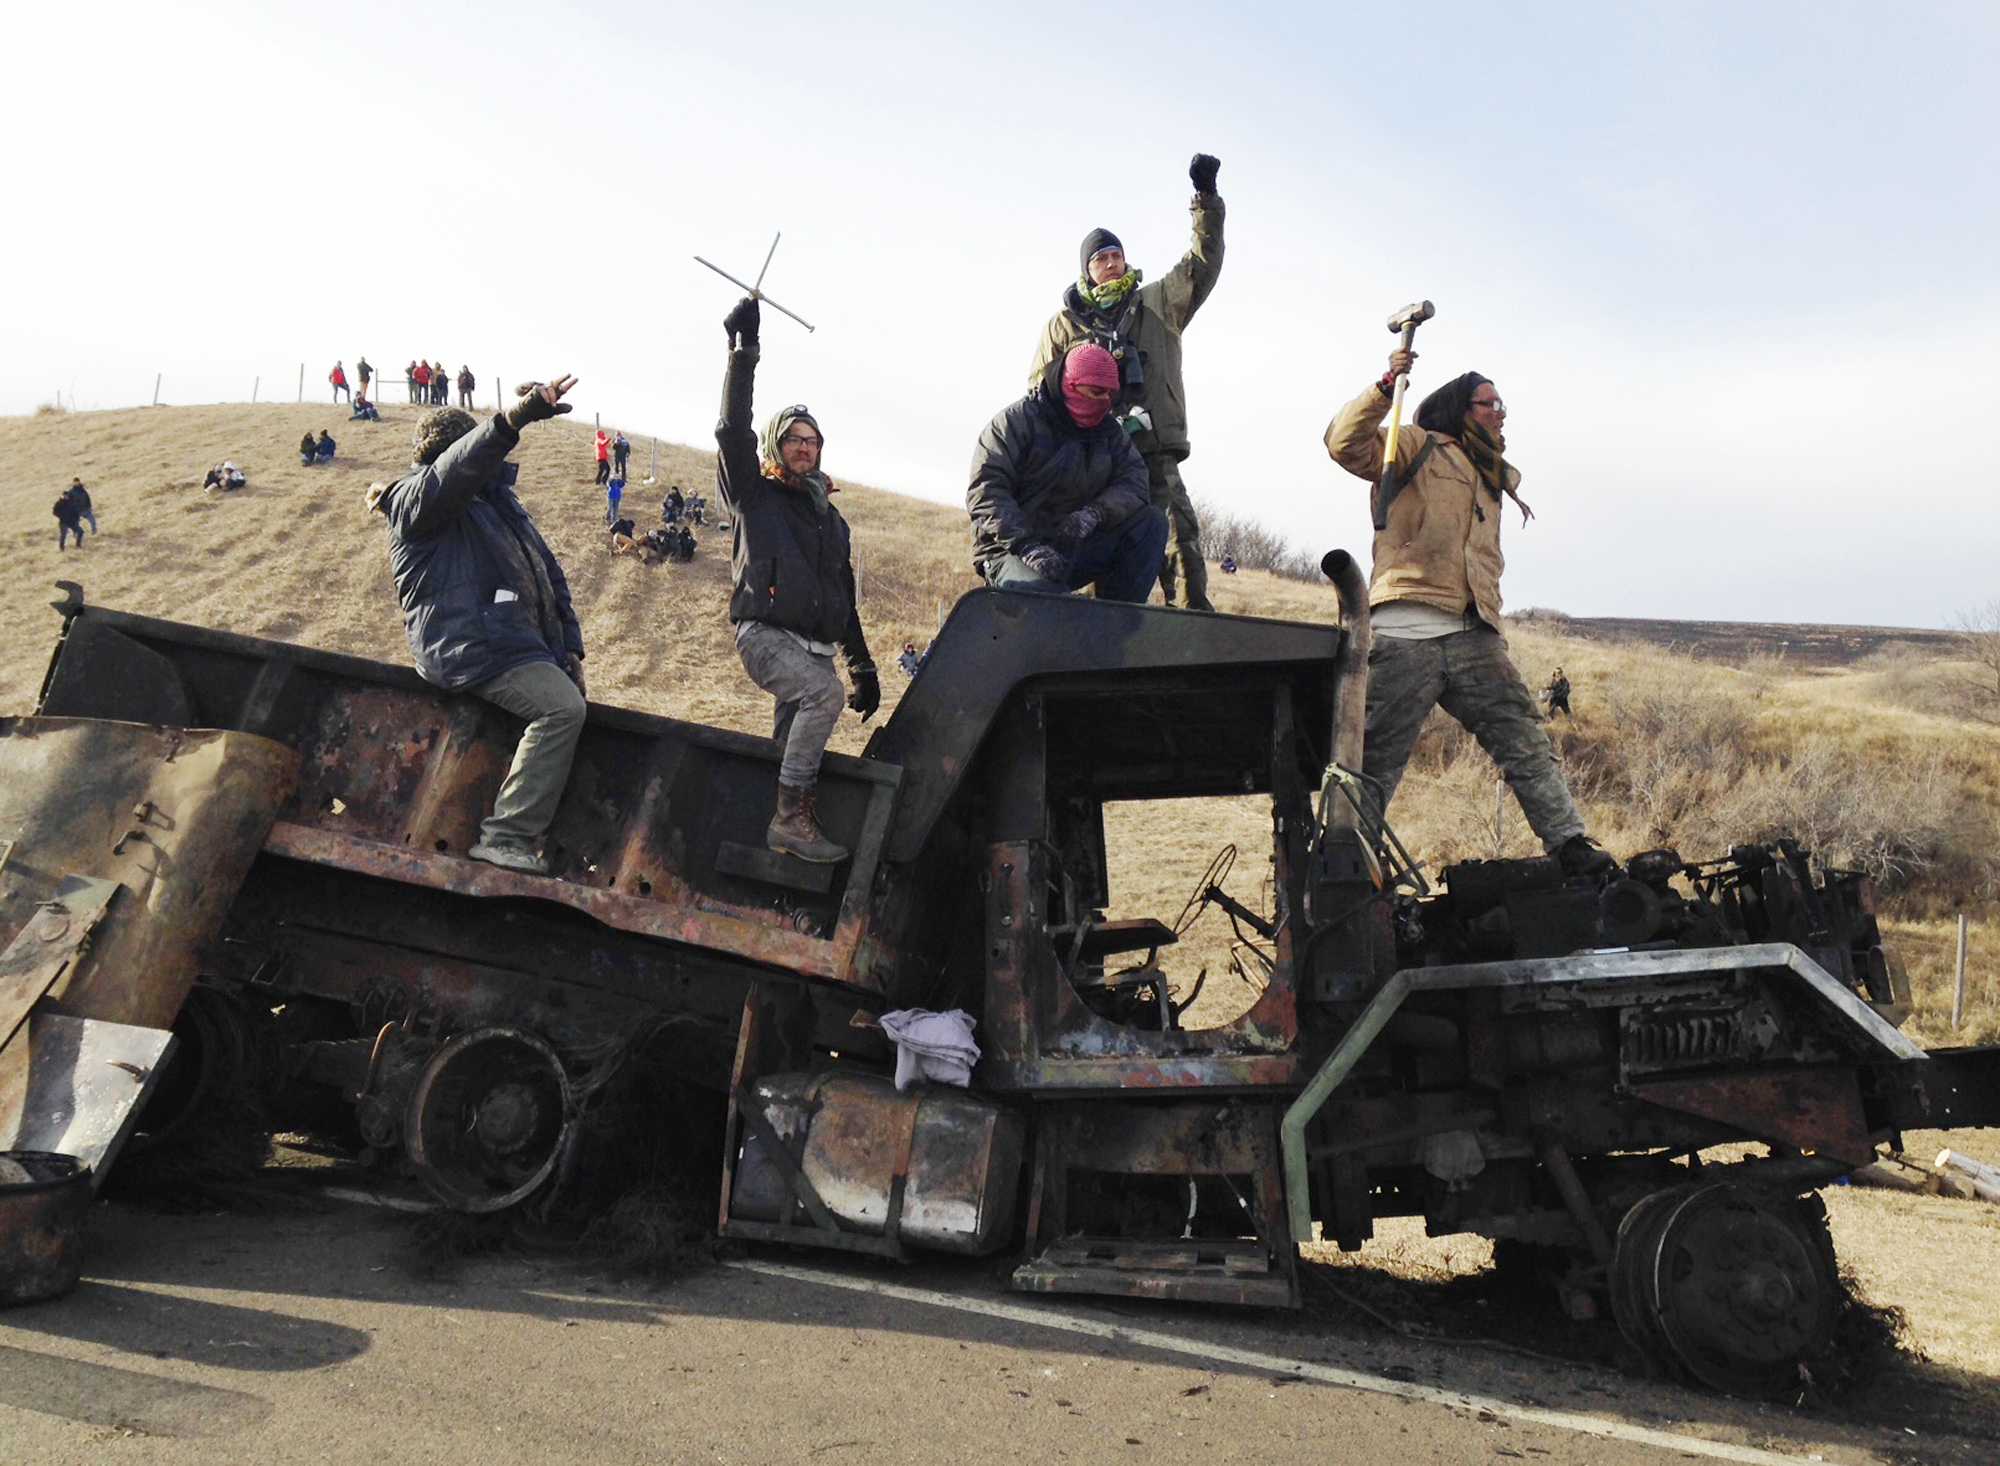 FILE - In this Monday, Nov. 21, 2016, file photo, protesters against the Dakota Access oil pipeline stand on a burned-out truck near Cannon Ball, N.D., that they removed from a long-closed bridge a day earlier on a state highway near their camp in southern North Dakota. President-elect Donald Trump holds stock in the company building the disputed Dakota Access oil pipeline, and pipeline opponents warn that Trump's investments could undercut any decision he makes on the $3.8 billion project as president. (AP Photo/James MacPherson, File)